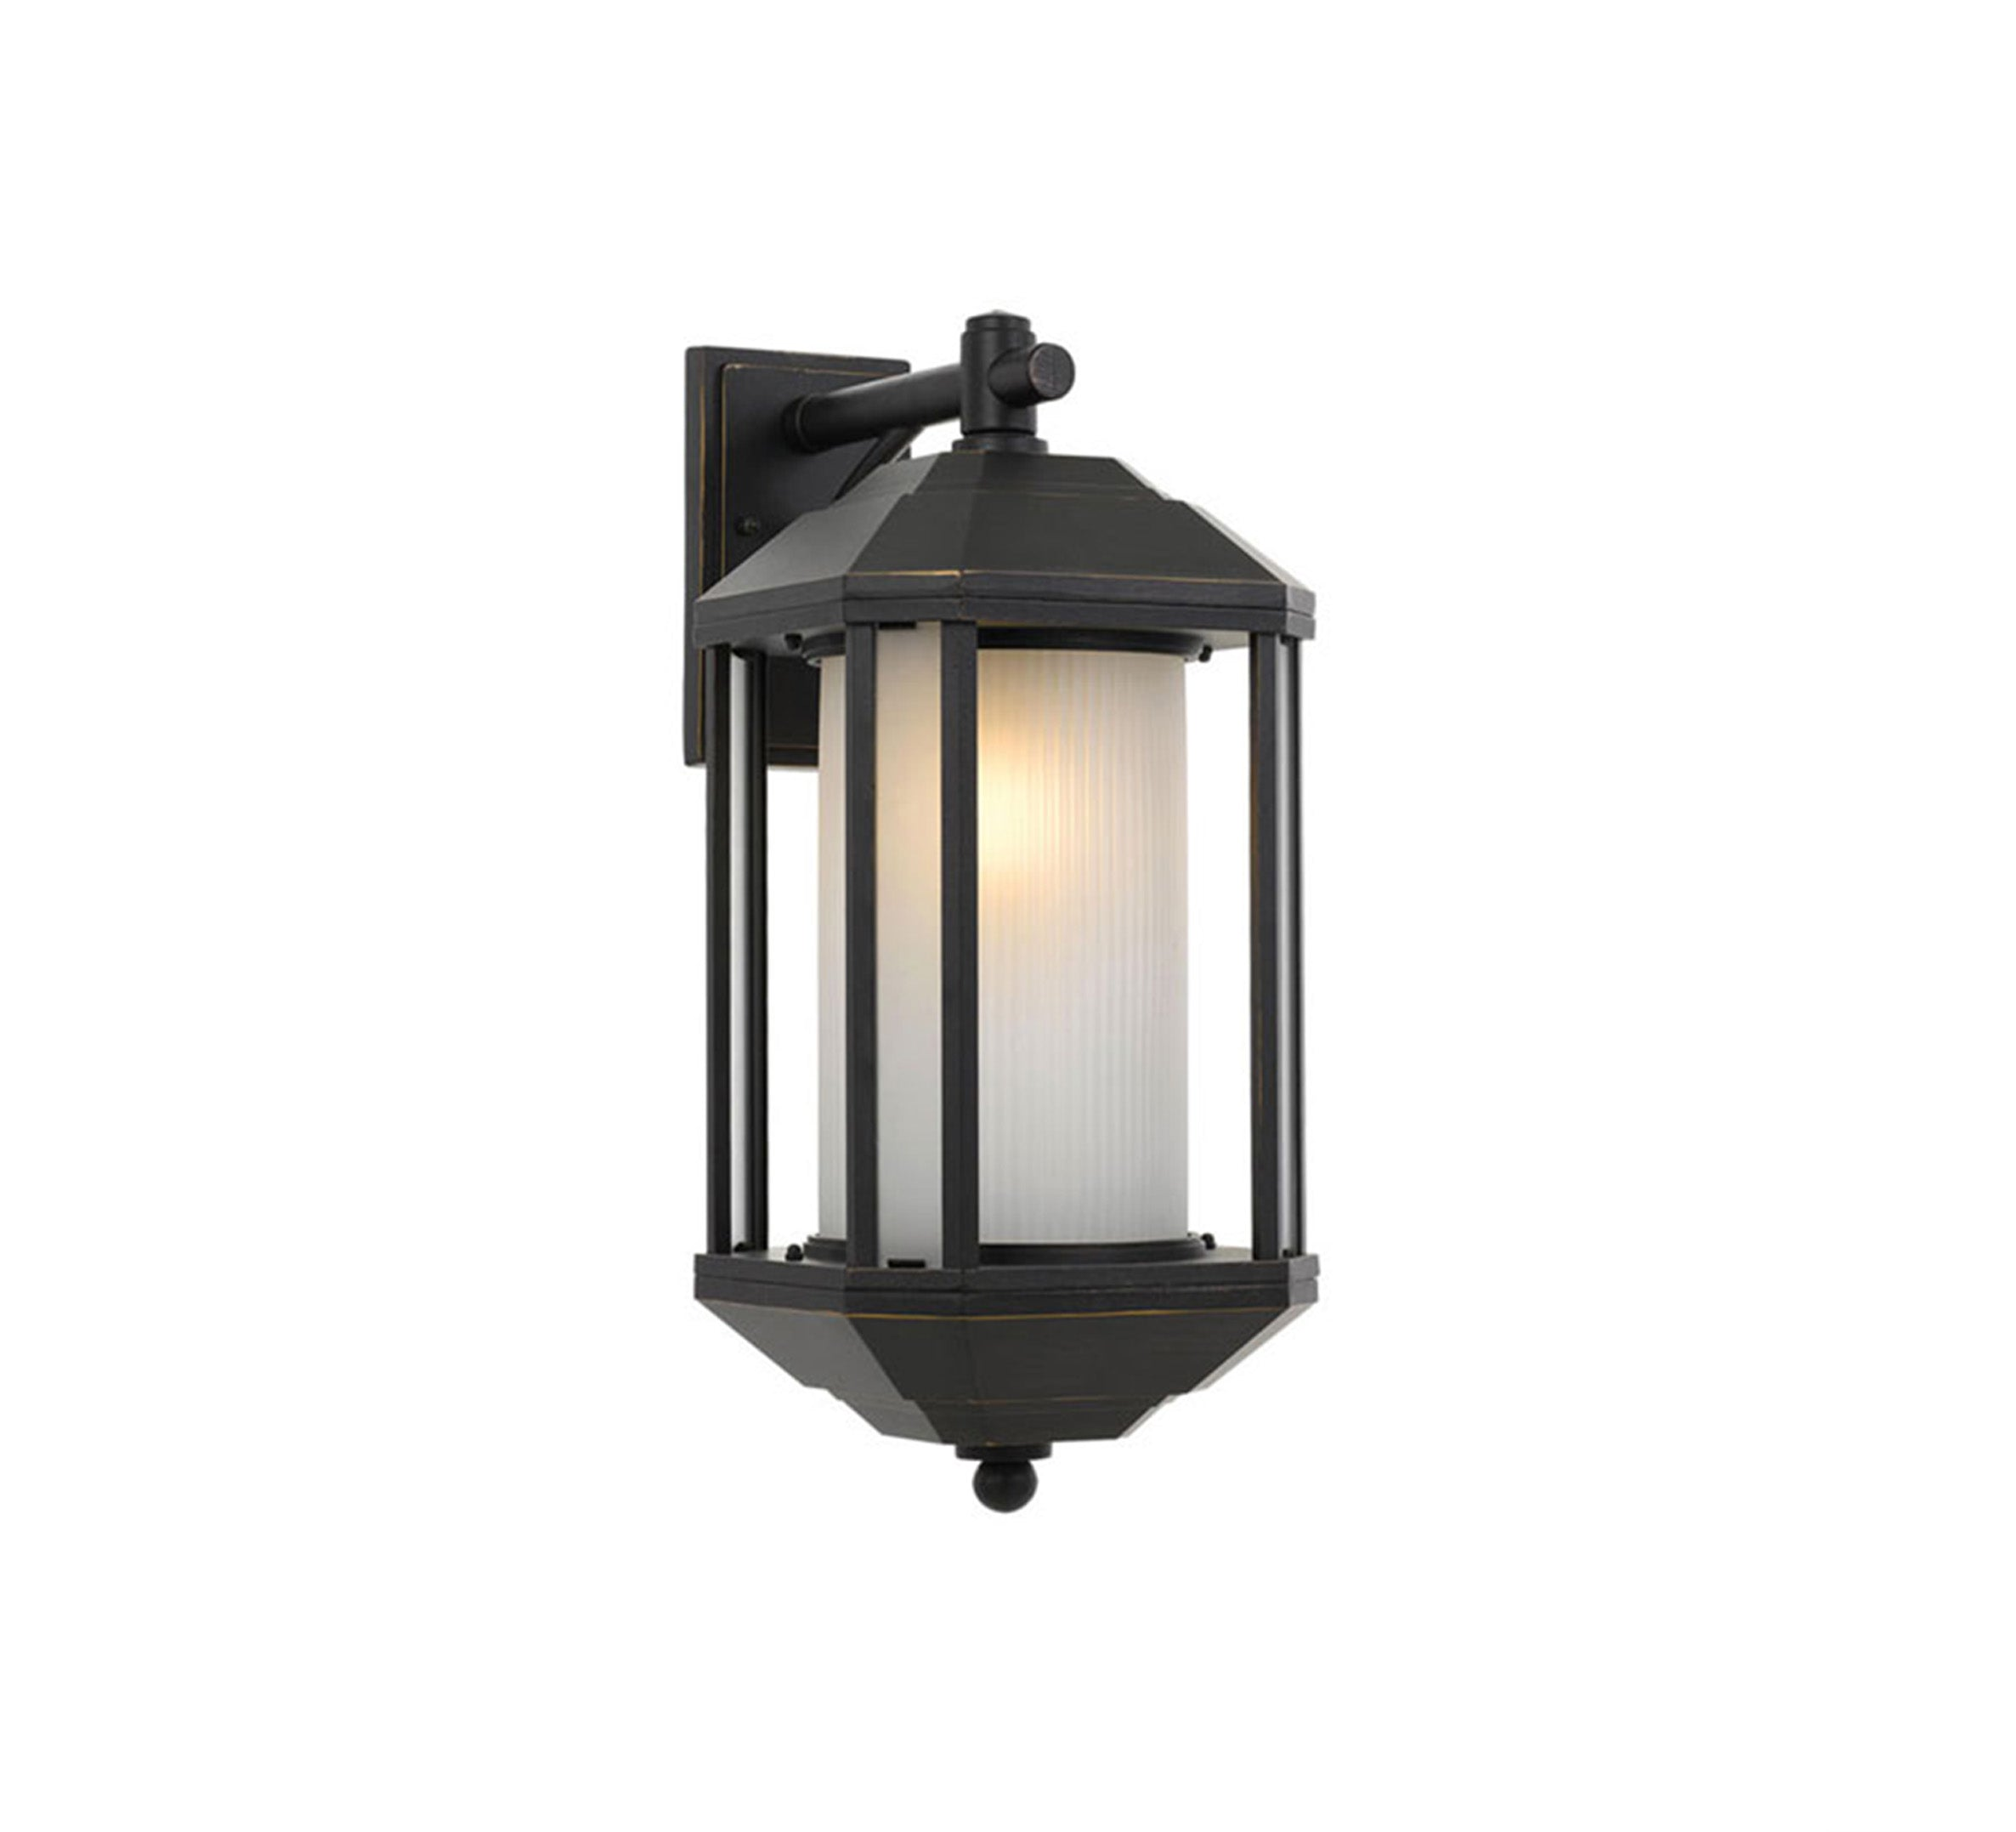 Havard Exterior Wall Light